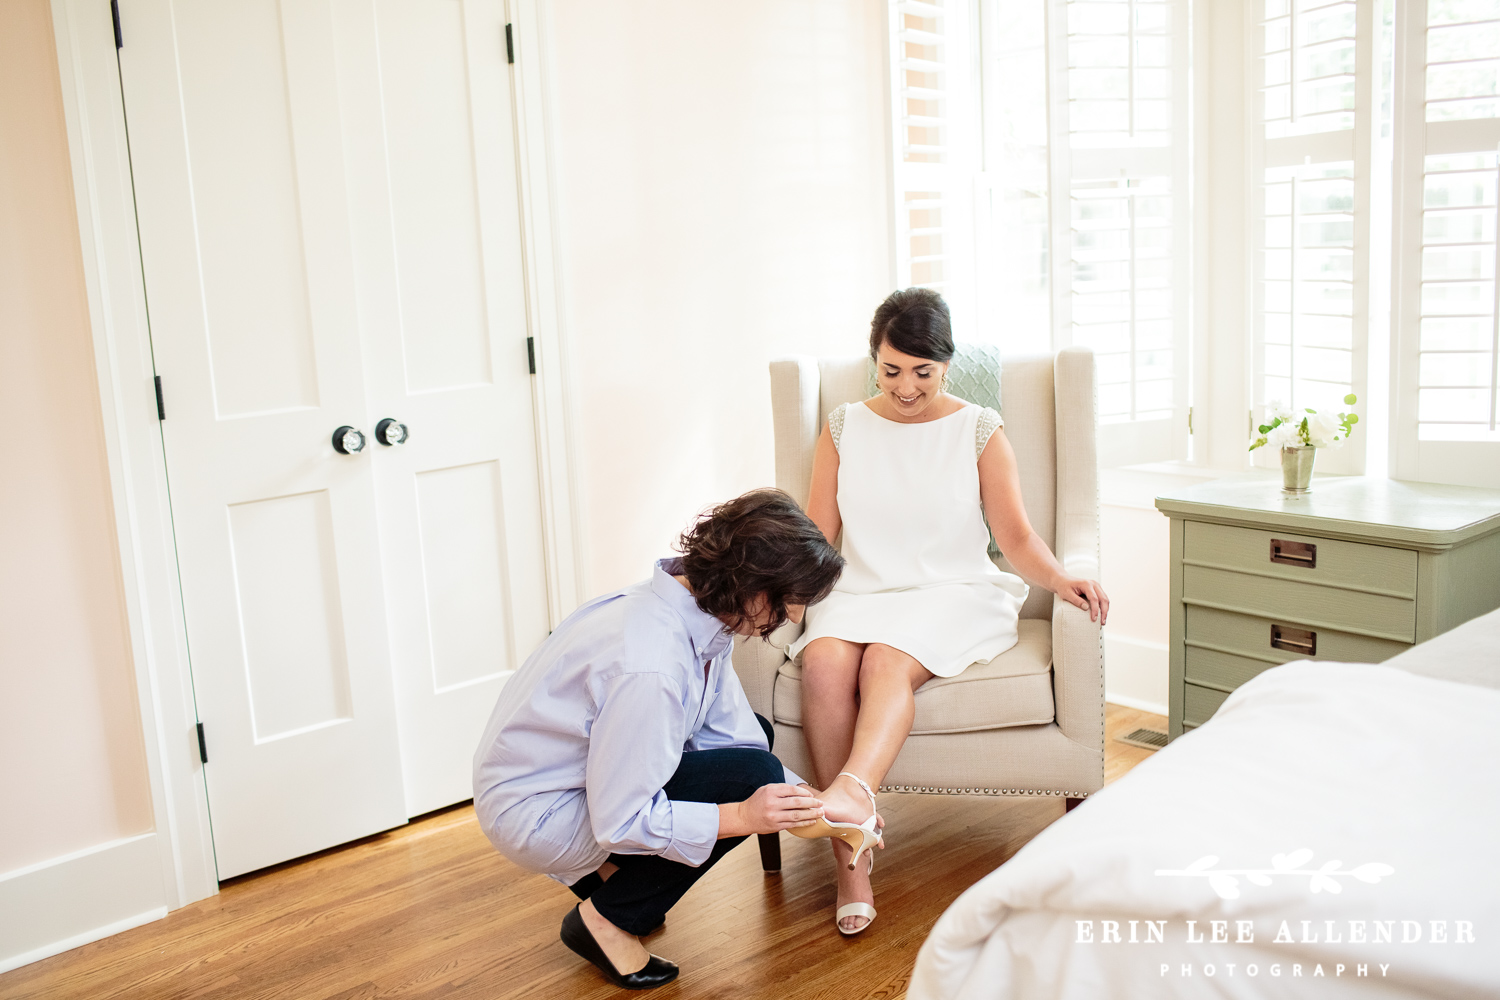 Bride_Getting_Ready_At_Home